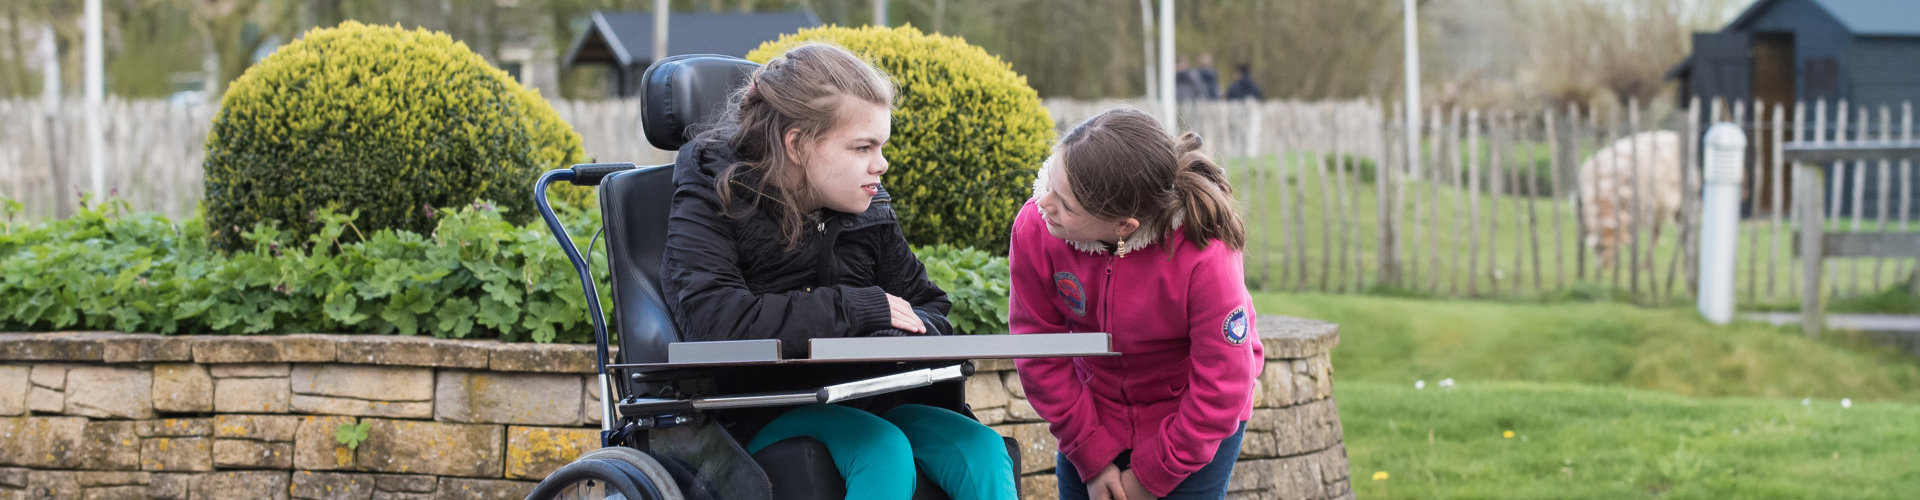 young girl talking to another girl on a wheelchair